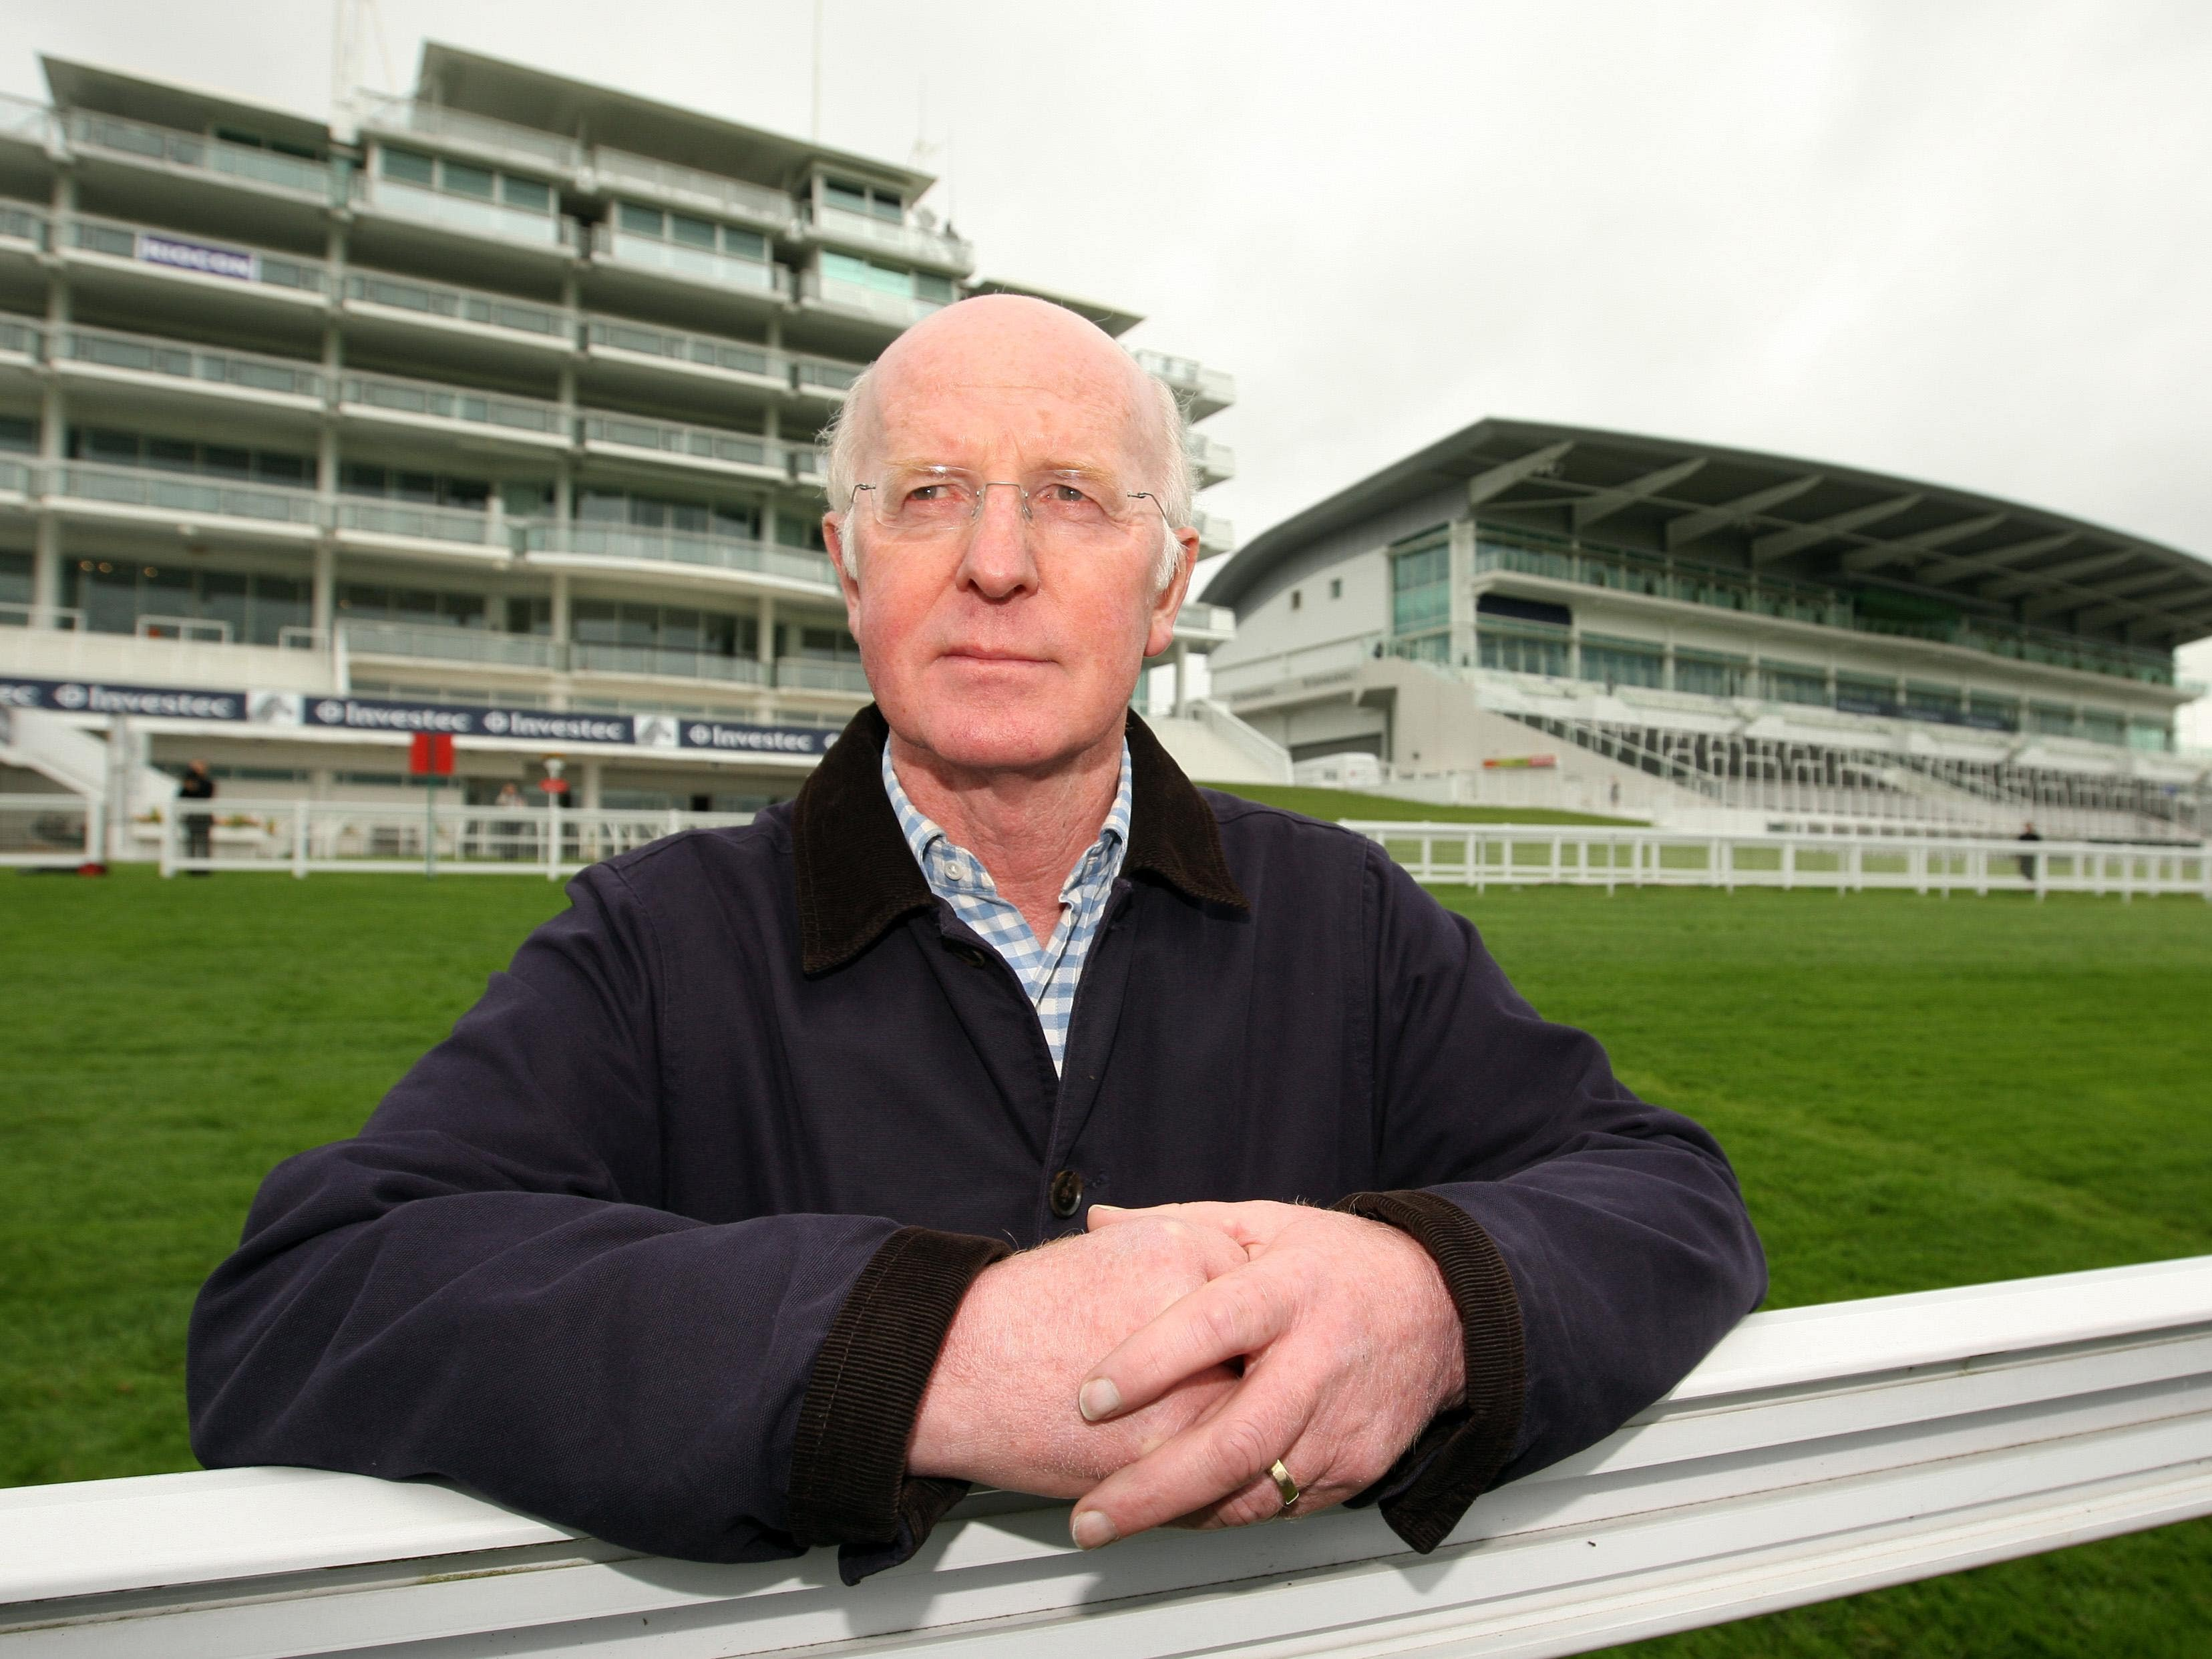 John Oxx, pictured at Epsom, where he has enjoyed much big-race success (Dominic Lipinski/PA)